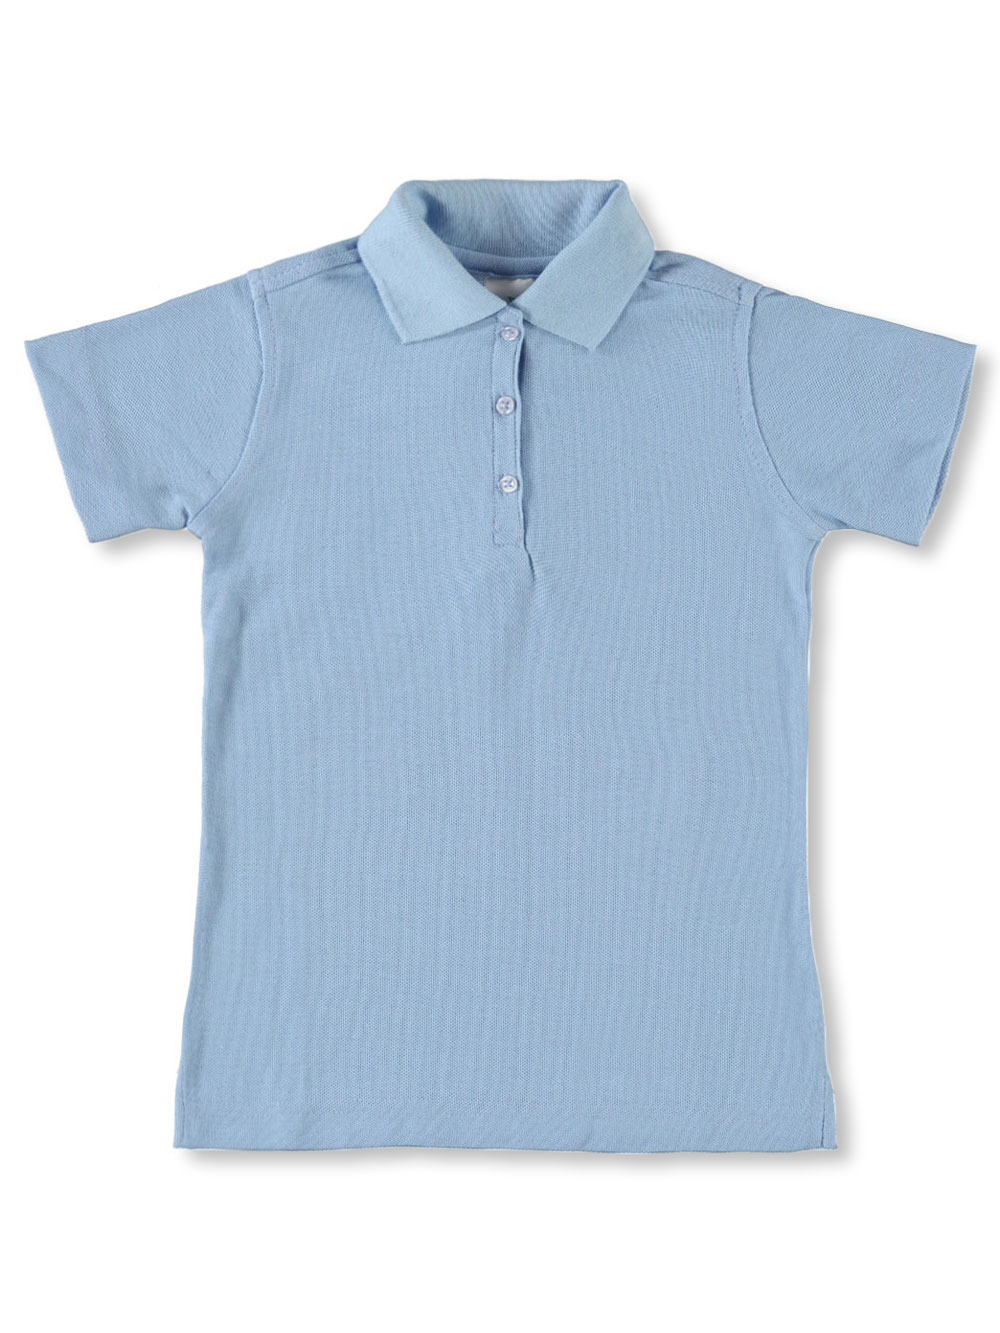 Size 7-8 Knit Polos for Girls